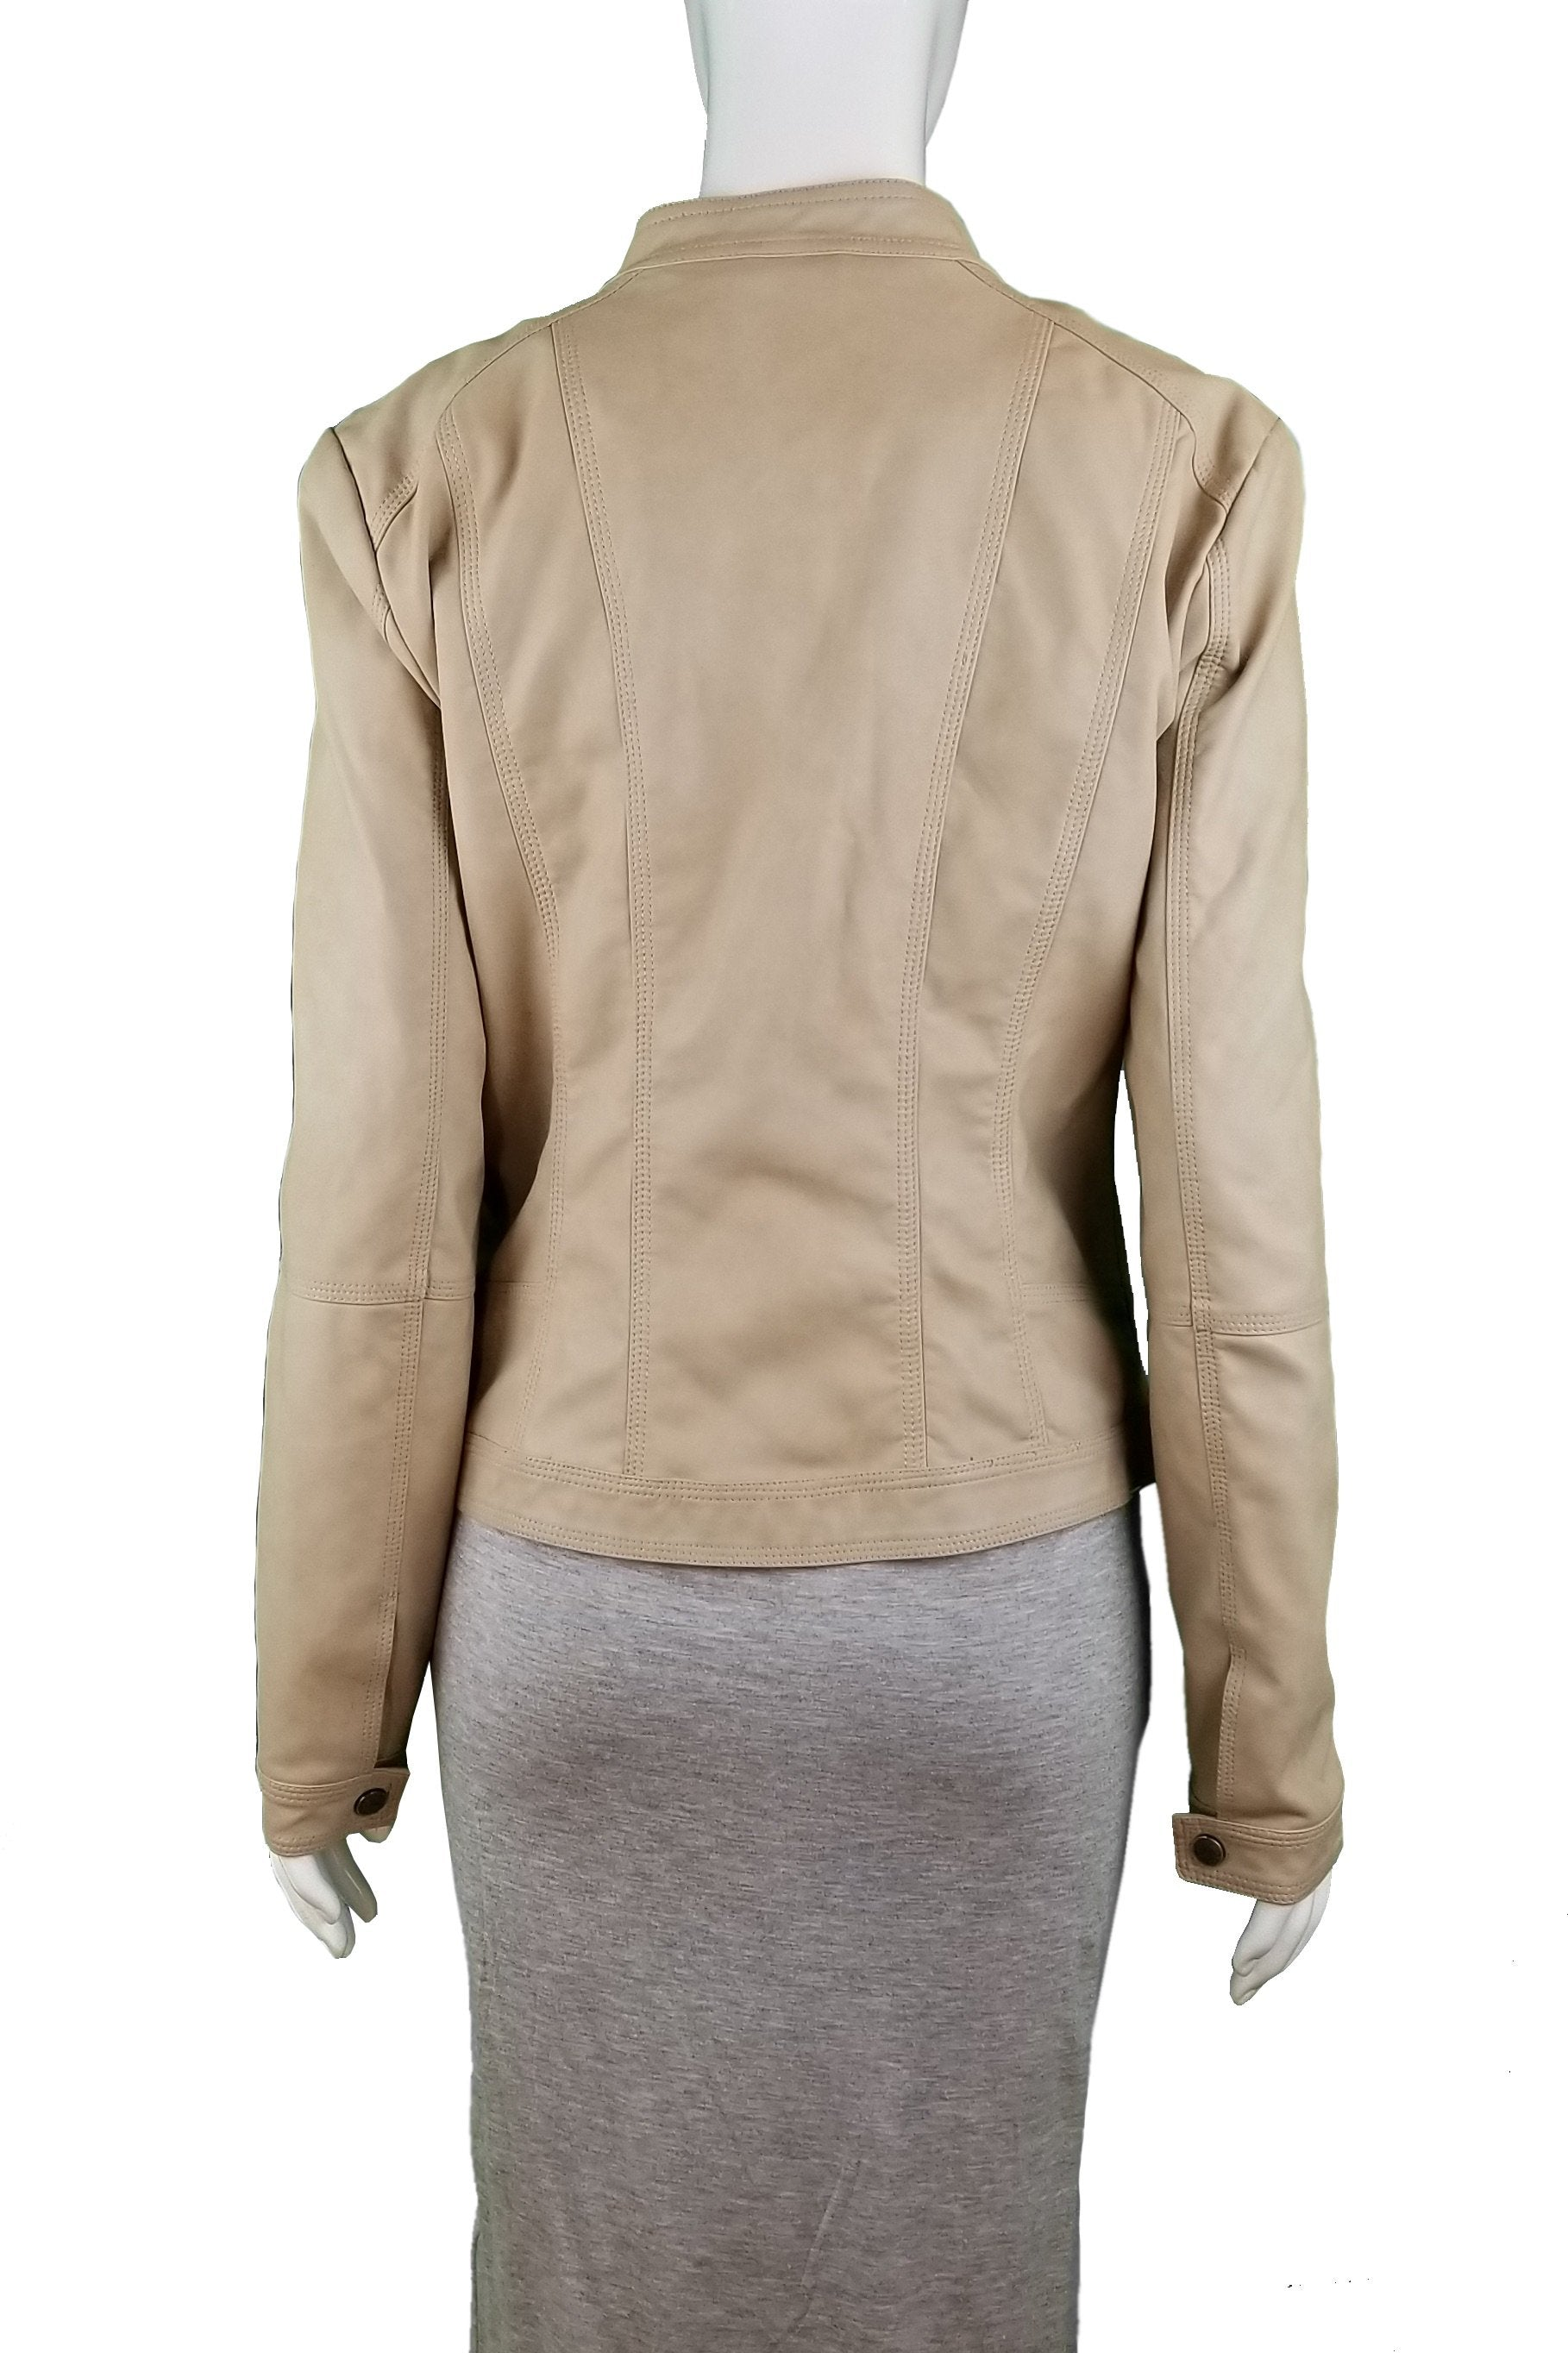 ONLY Faux Leather Jacket, Unique light color leather jacket, soft to the touch, Tan, Brown, Shell: 50% Polyurethane, 50% Viscose. Lining: 100% Polyester, women's Jackets & Coats, women's Tan, Brown Jackets & Coats, ONLY women's Jackets & Coats, women's leather jacket, ONLY women's jacket, women's coat